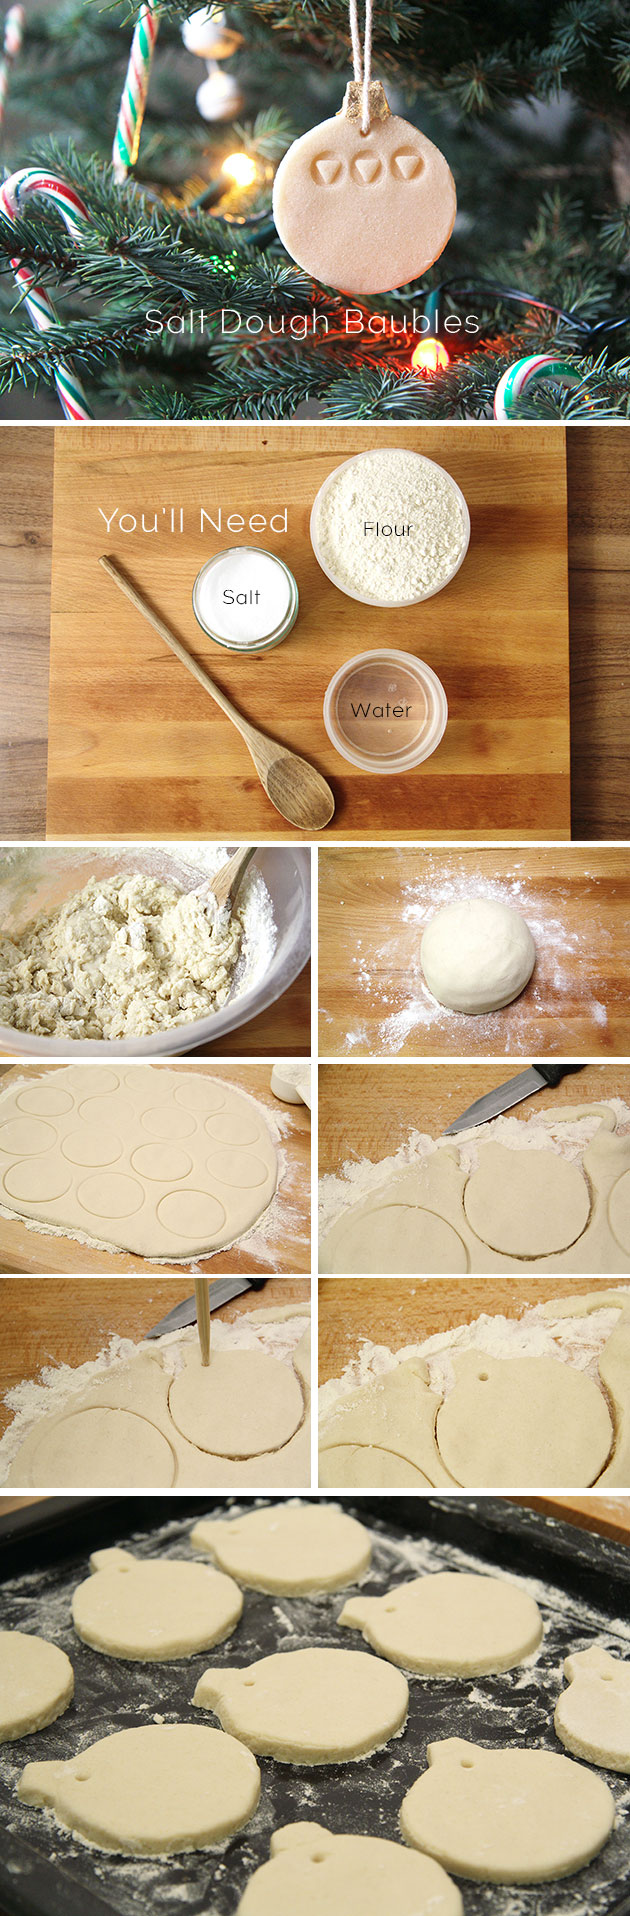 Salt-Dough-Bauble-DIY